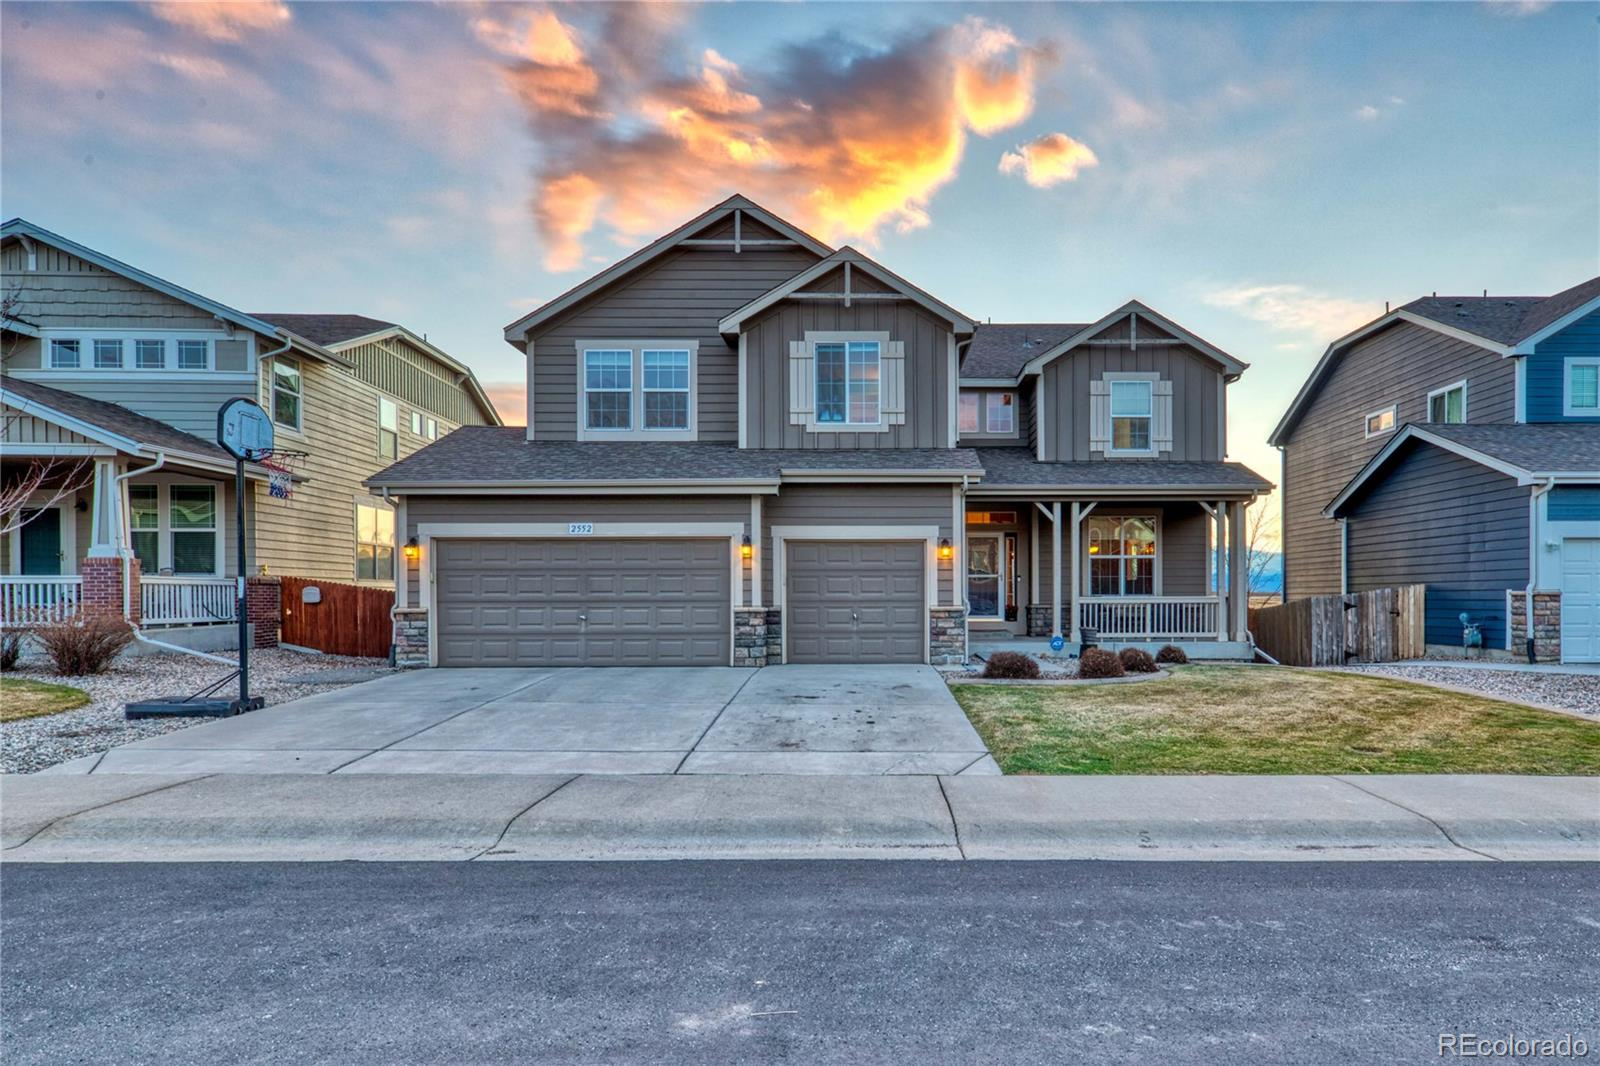 2552 White Wing Road, Johnstown, CO 80534 - Johnstown, CO real estate listing